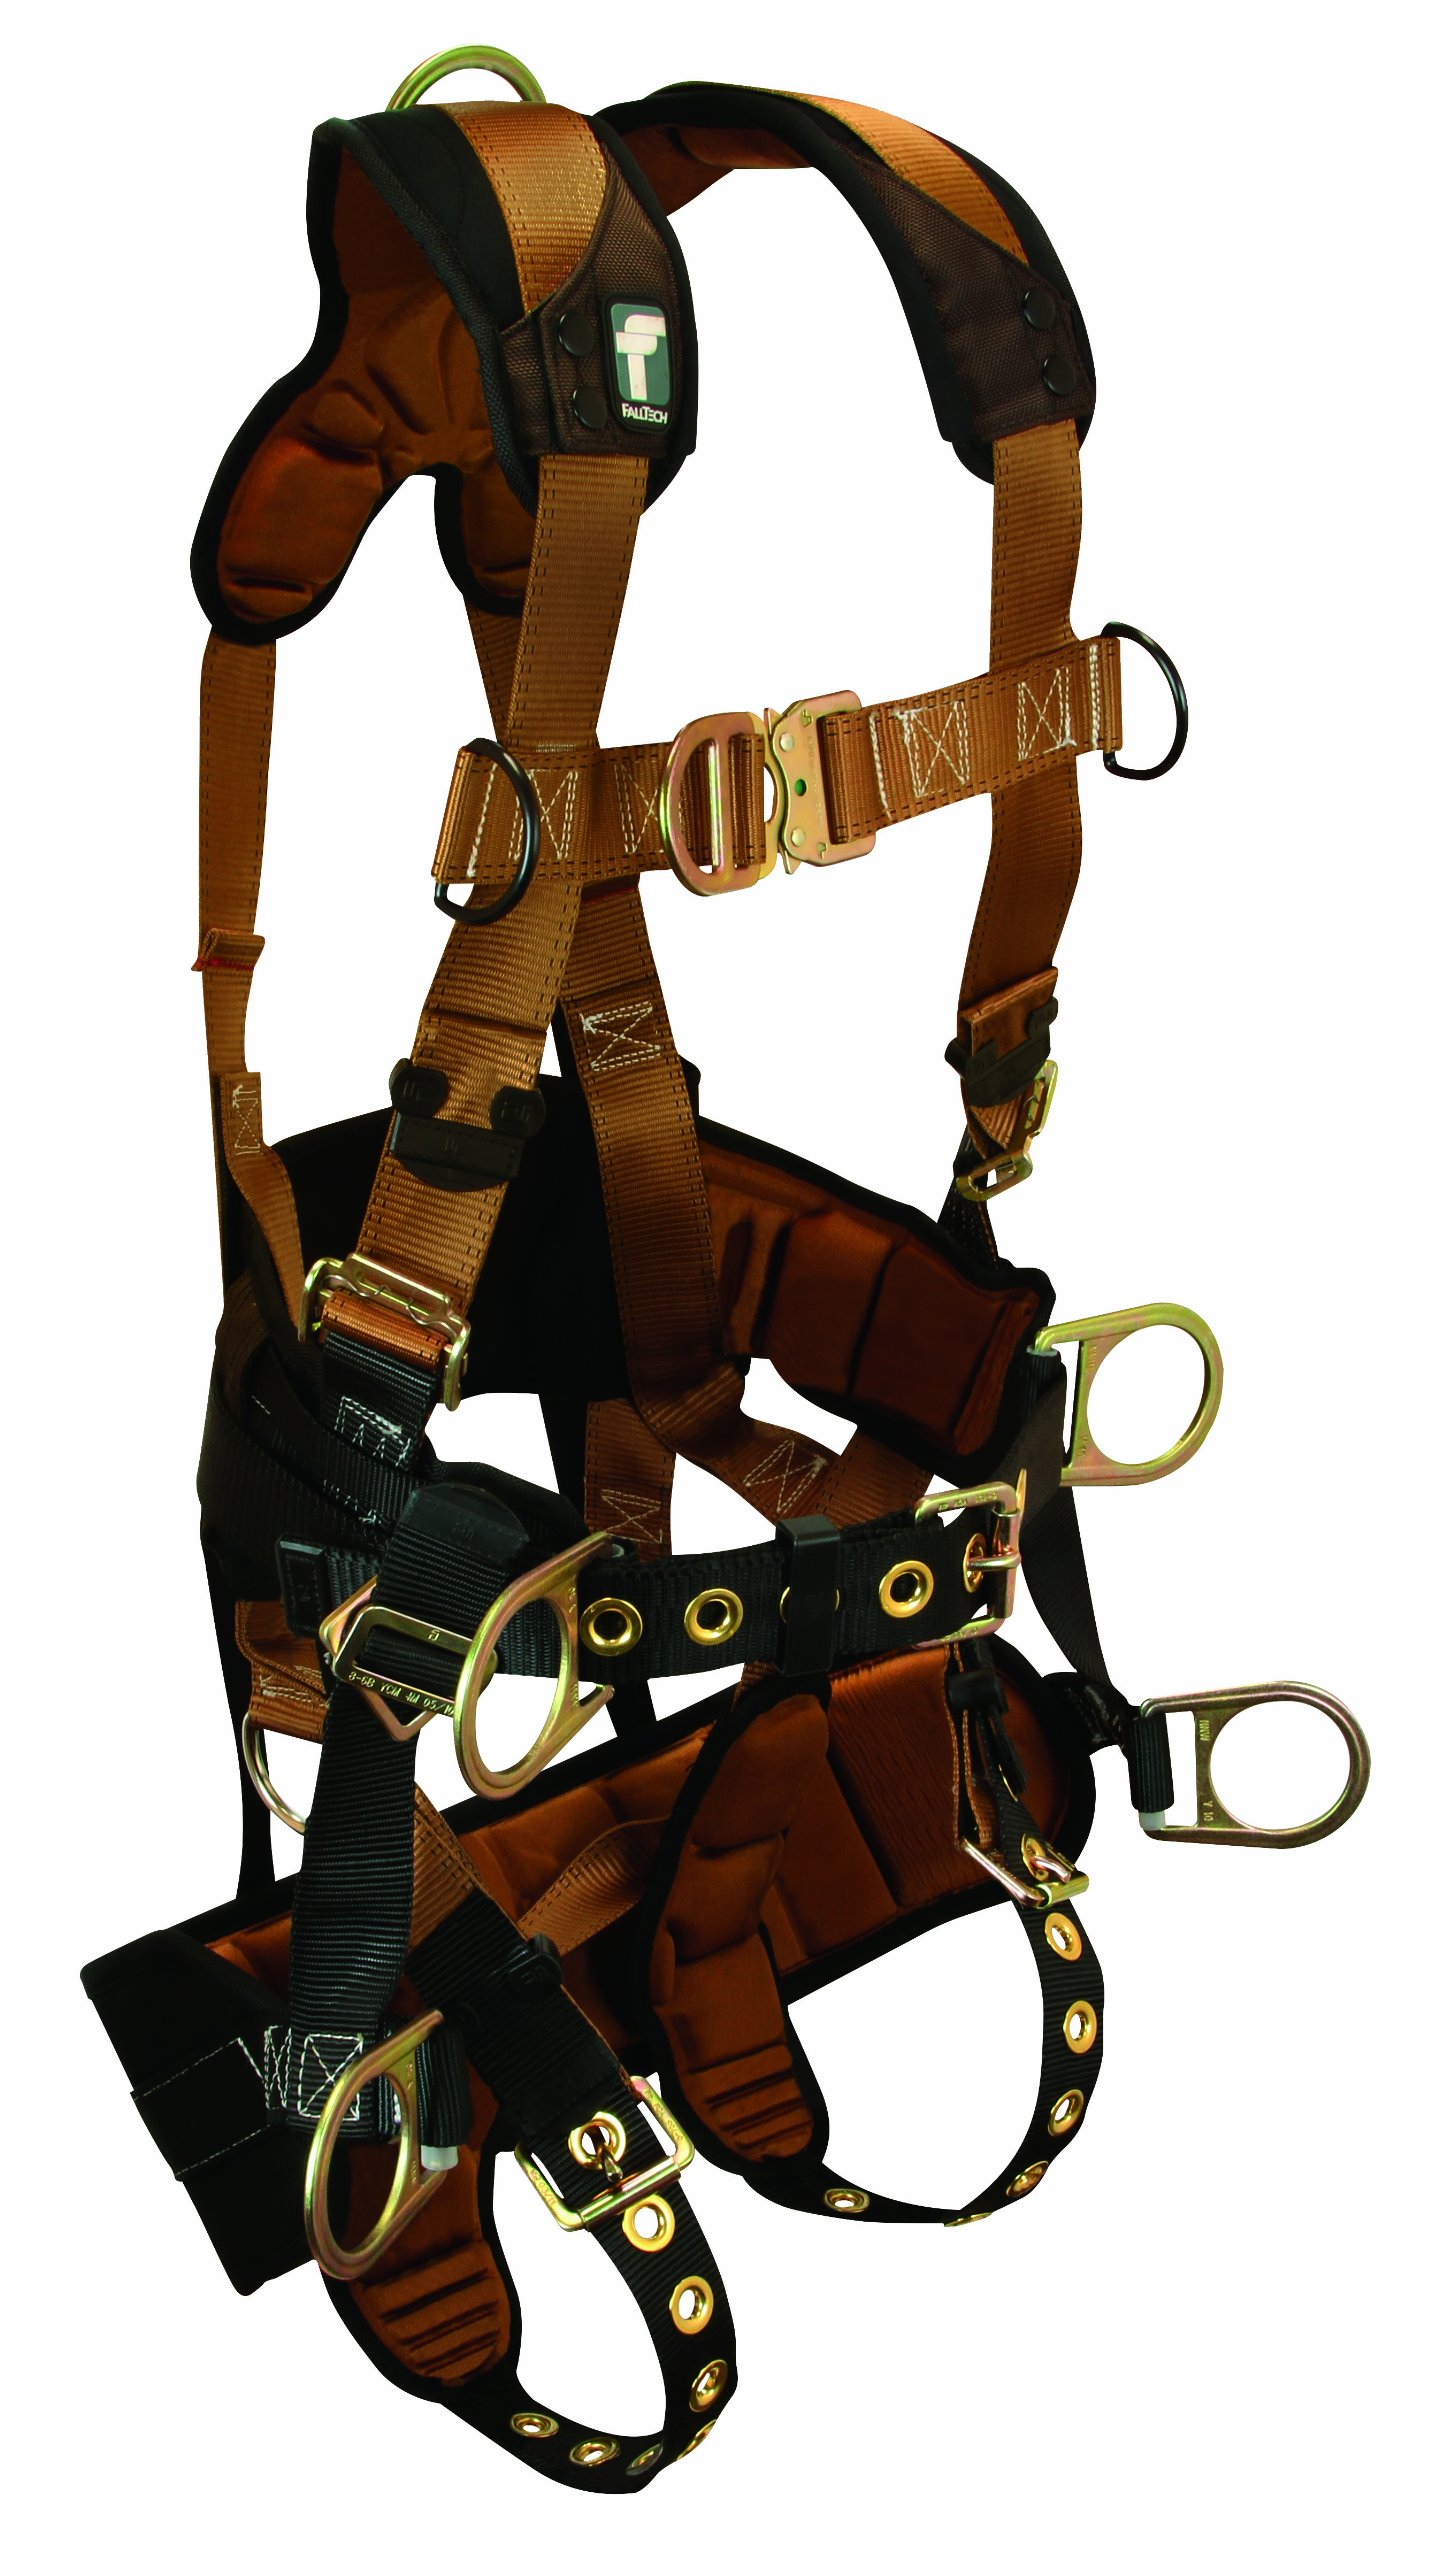 FallTech 7084M ComforTech TowerClimber Full Body Harness with 6 D-Rings, Waist Pad, Padded Work Seat, Tongue Buckle Legs and Quick Connect Chest, Brown/Black, Medium